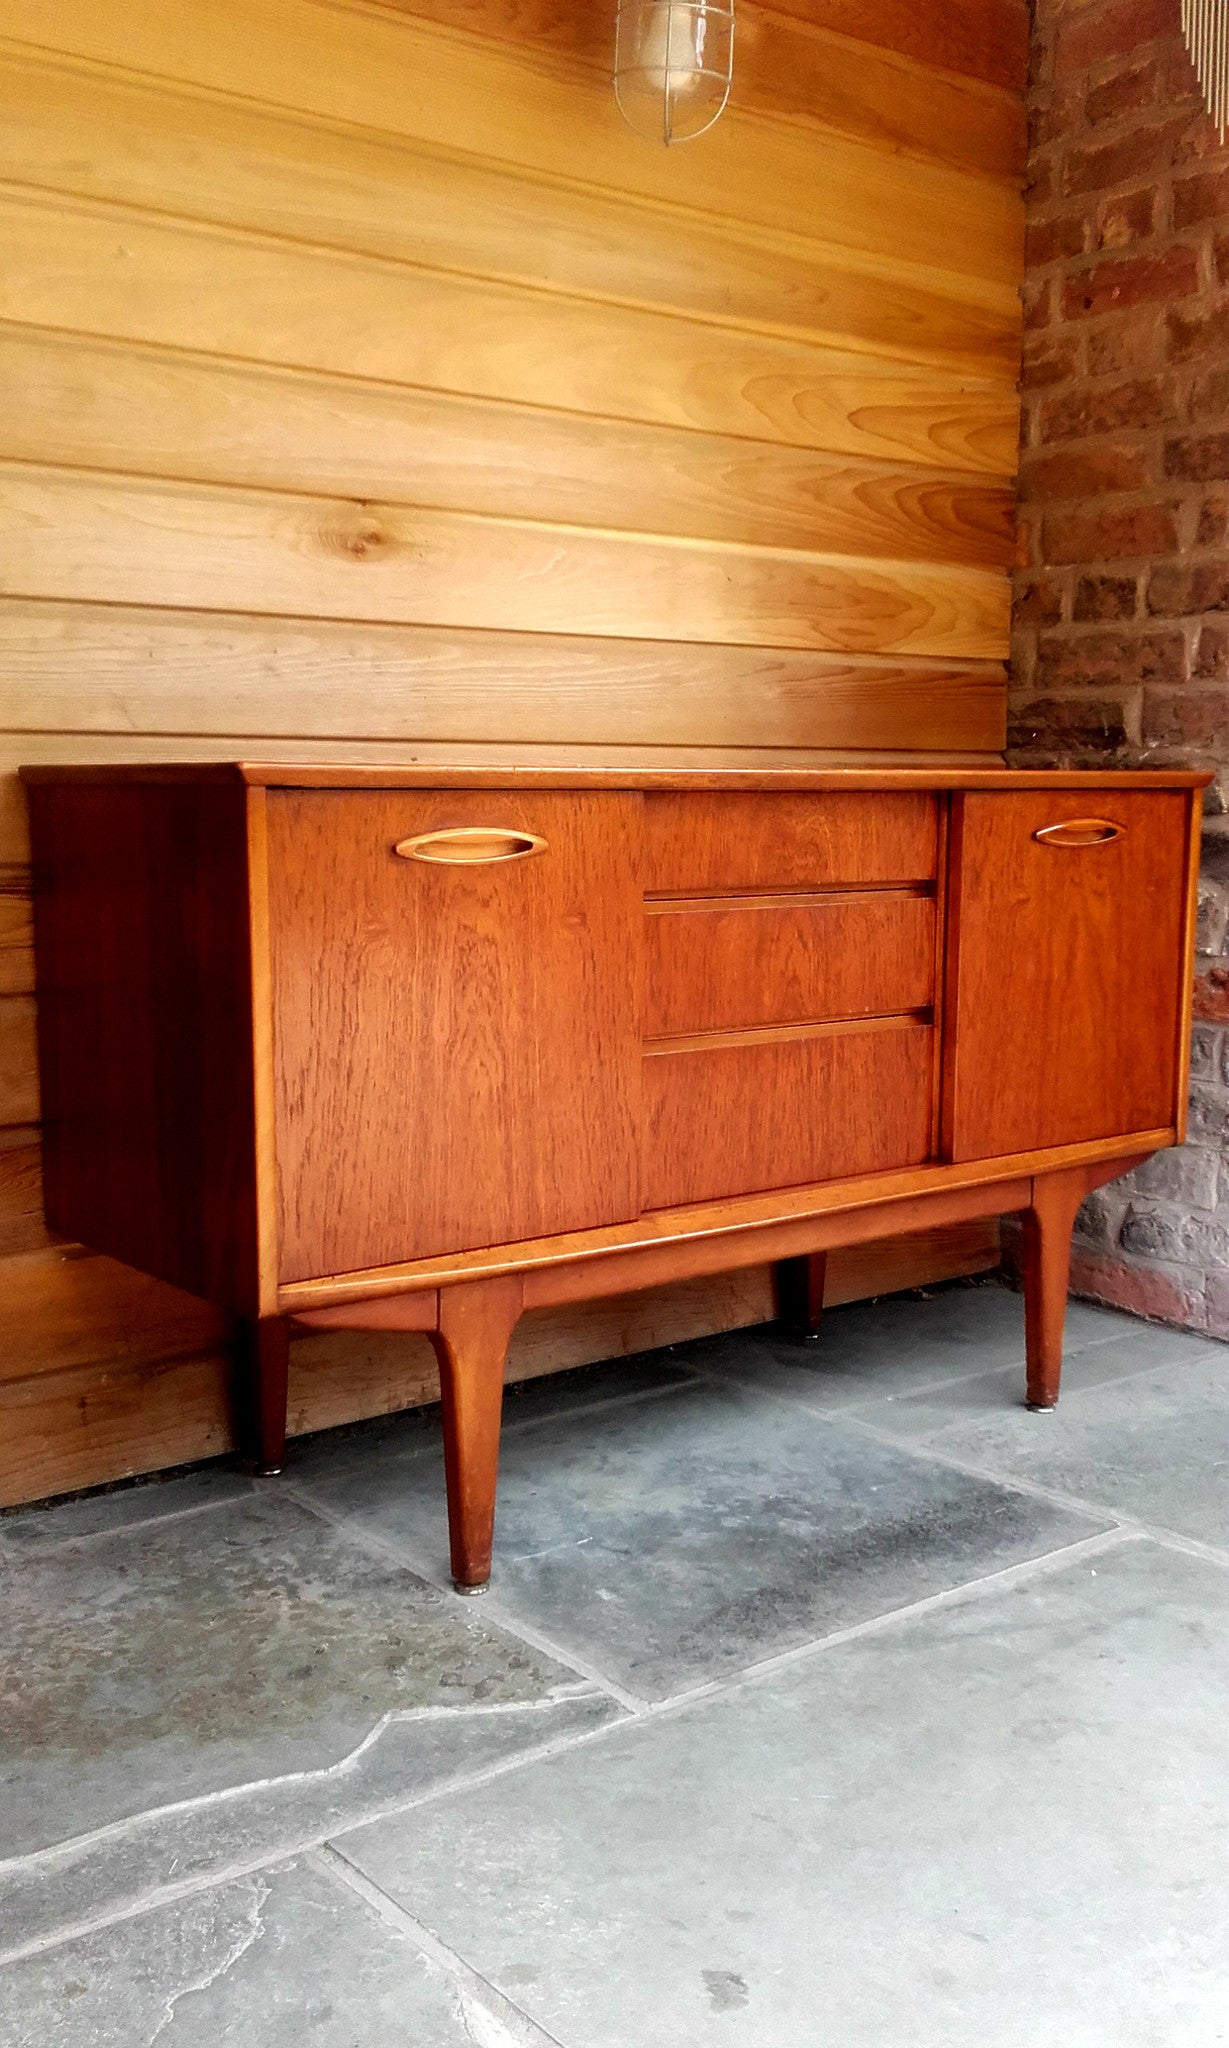 Lovely Compact Jentique Sideboard With Sliding Doors And Unusual